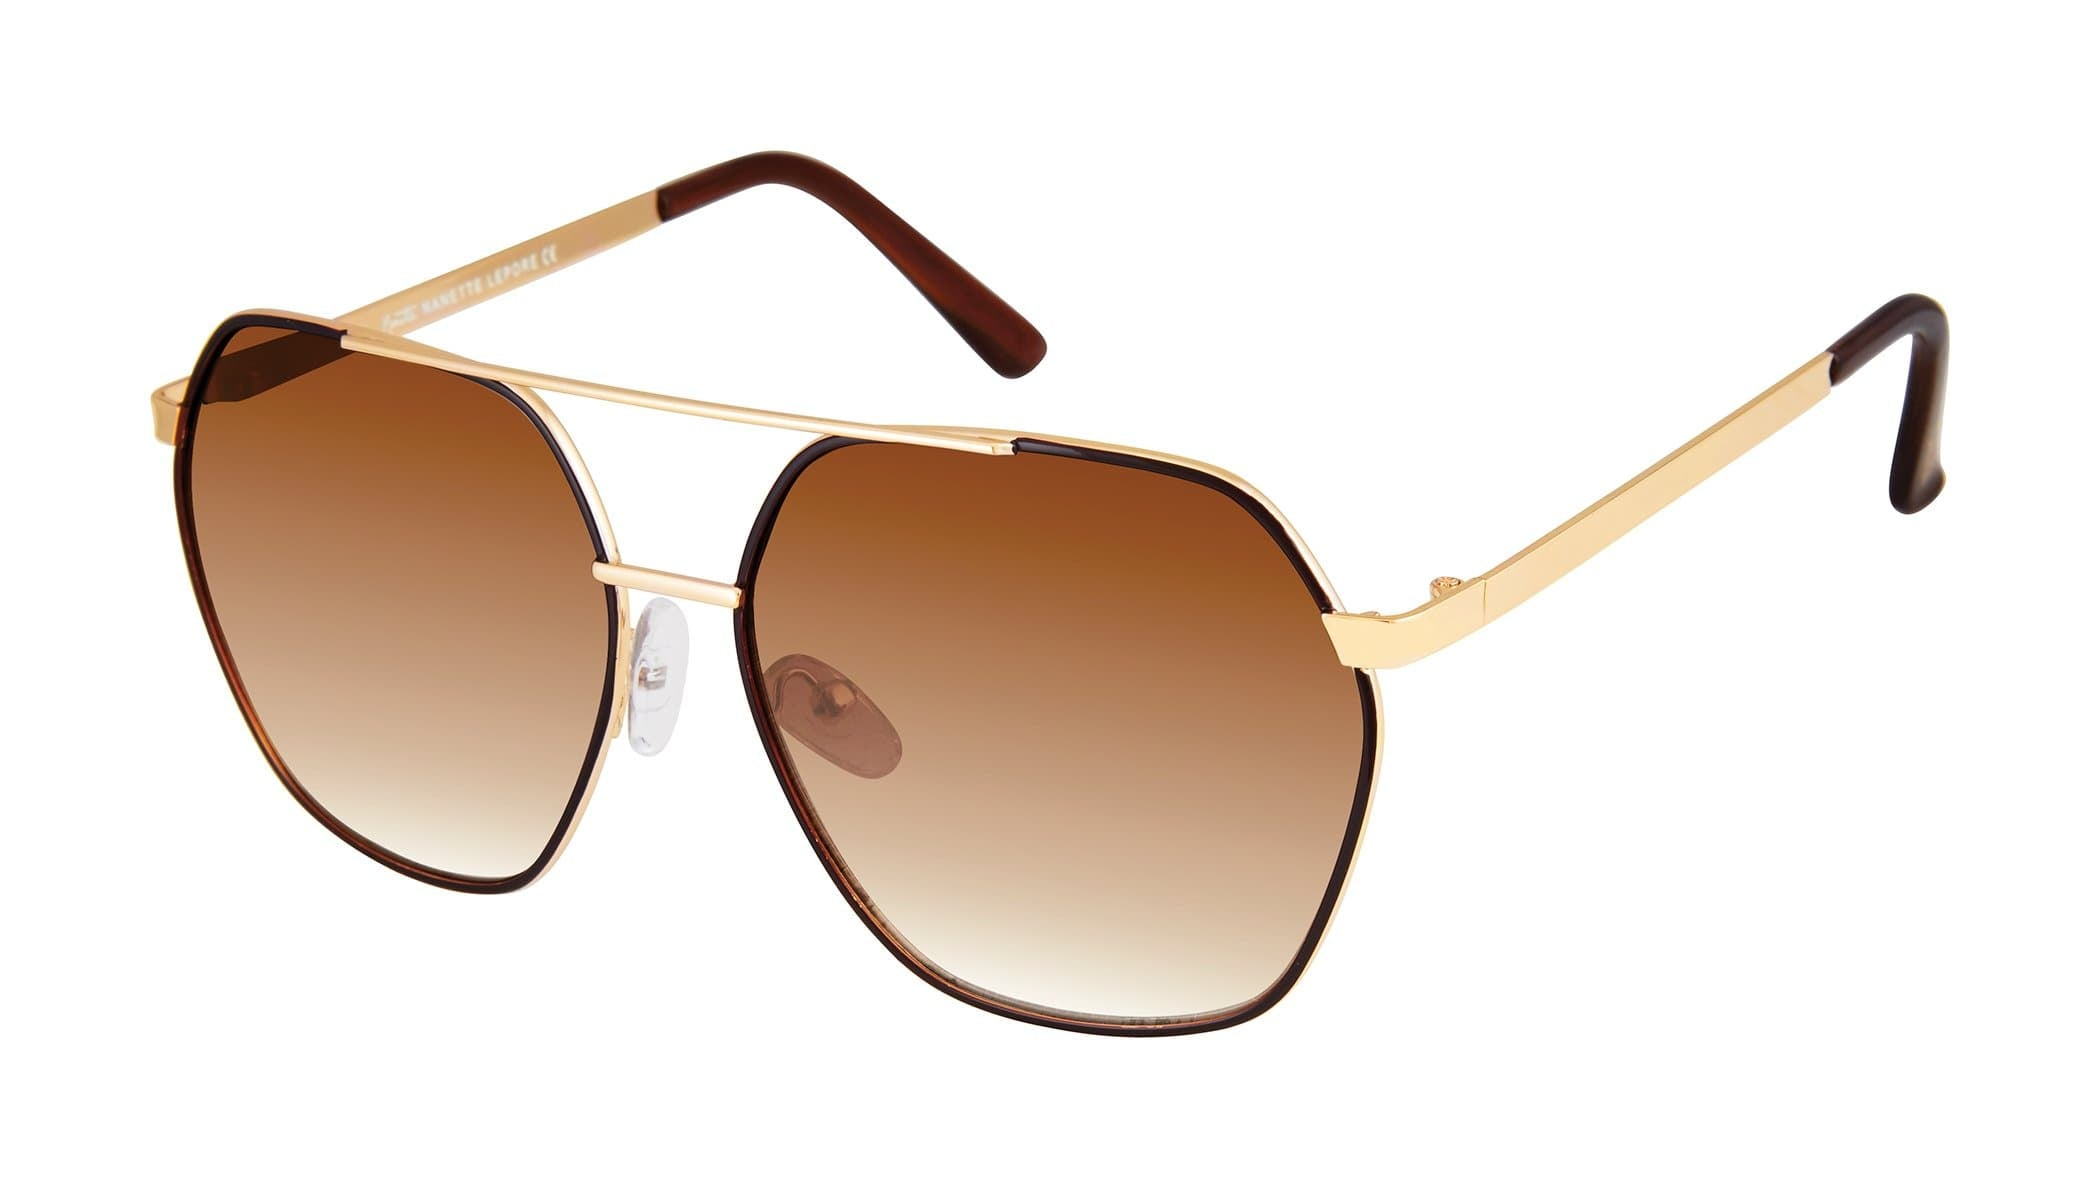 Lepore Geometric Sunglasses - FLJ CORPORATIONS